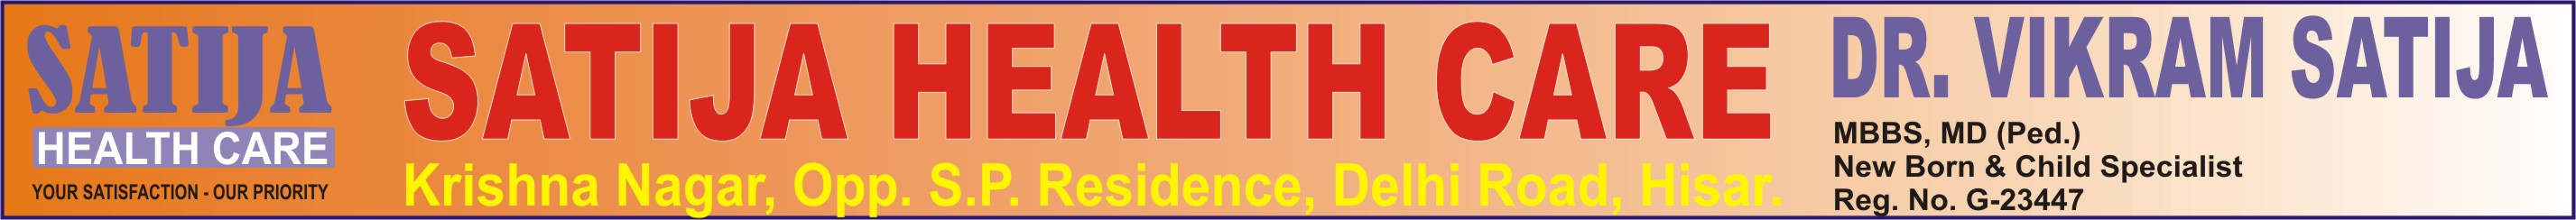 SATIJA HEALTH CARE